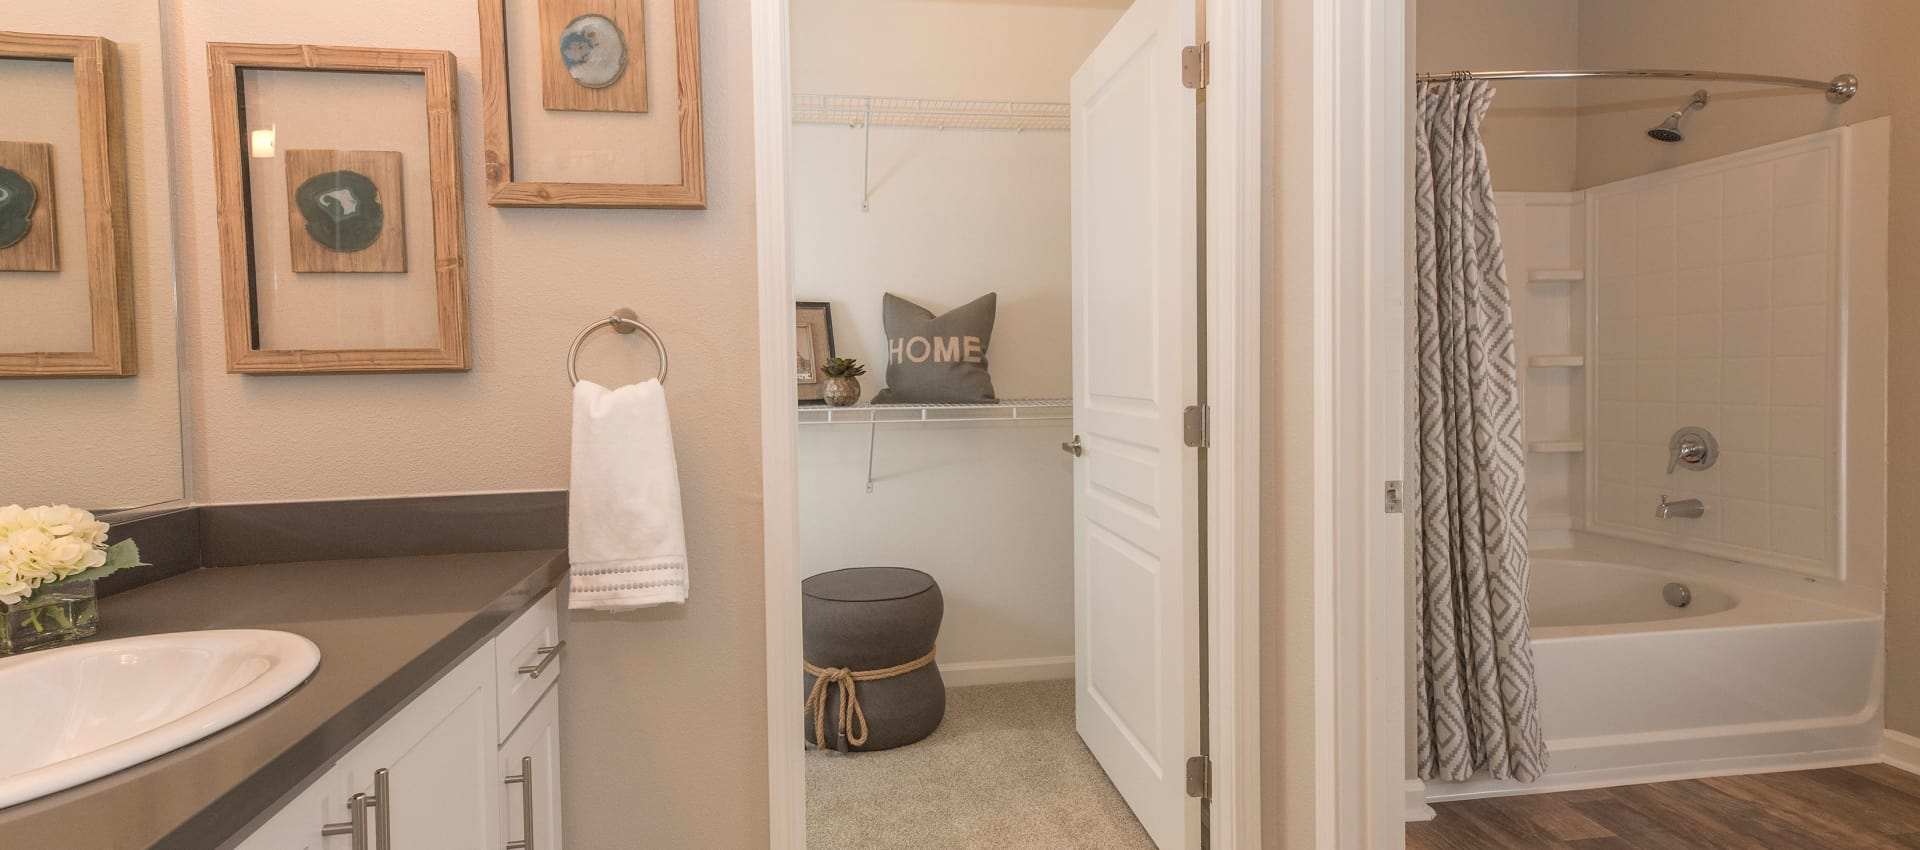 Enjoy apartments with a modern bathroom at The Artisan Apartment Homes in Sacramento, California